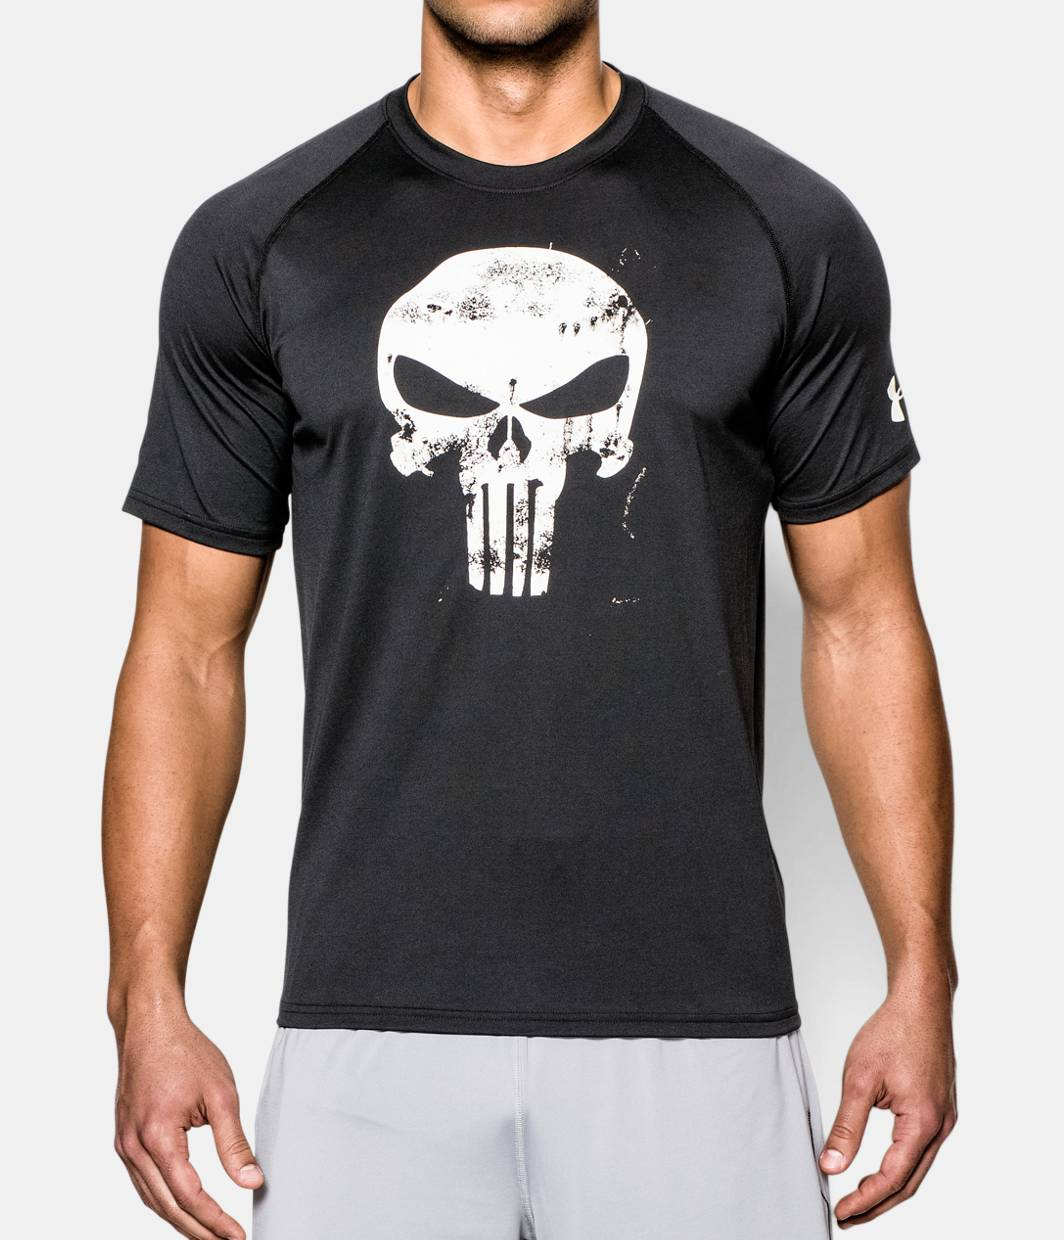 Basketball T Shirt Design Ideas basketball shirt design Mens Under Armour Alter Ego Punisher T Shirt 1 Color 3499